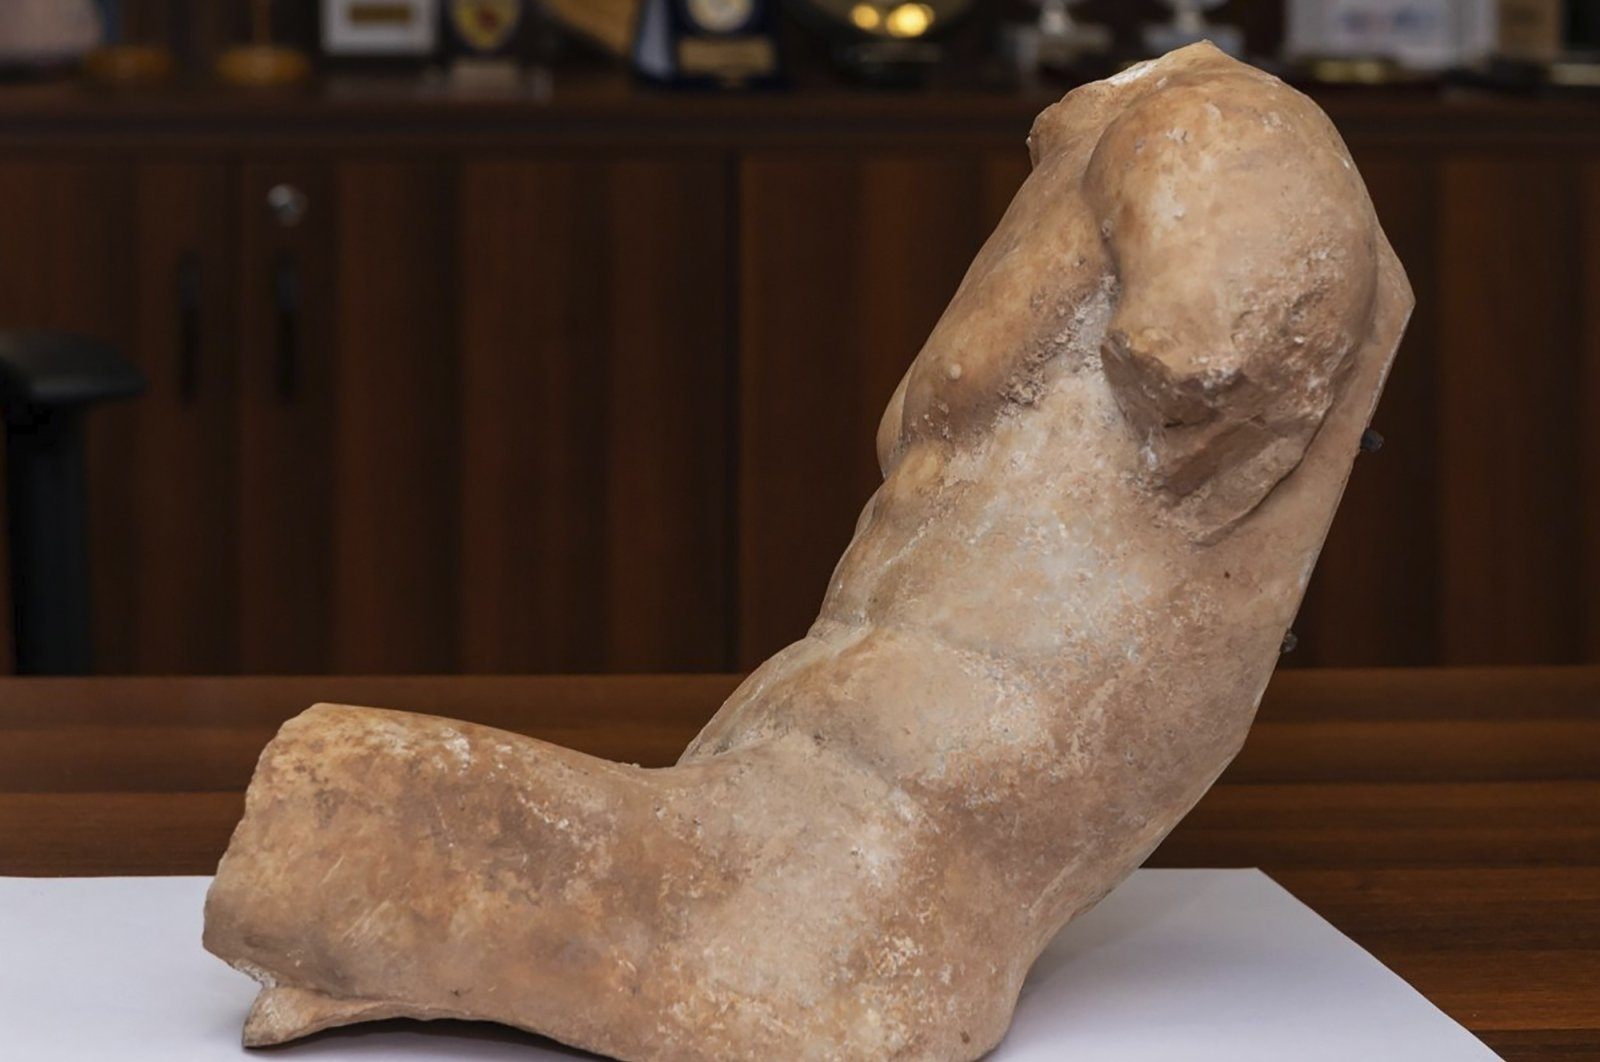 A 5th century B.C. statue about 37 centimeters (14.5 inches), depicting a seated young man who slightly reclines, can be seen, Athens, Greece, March 19, 2021. (Greek Police via AP)